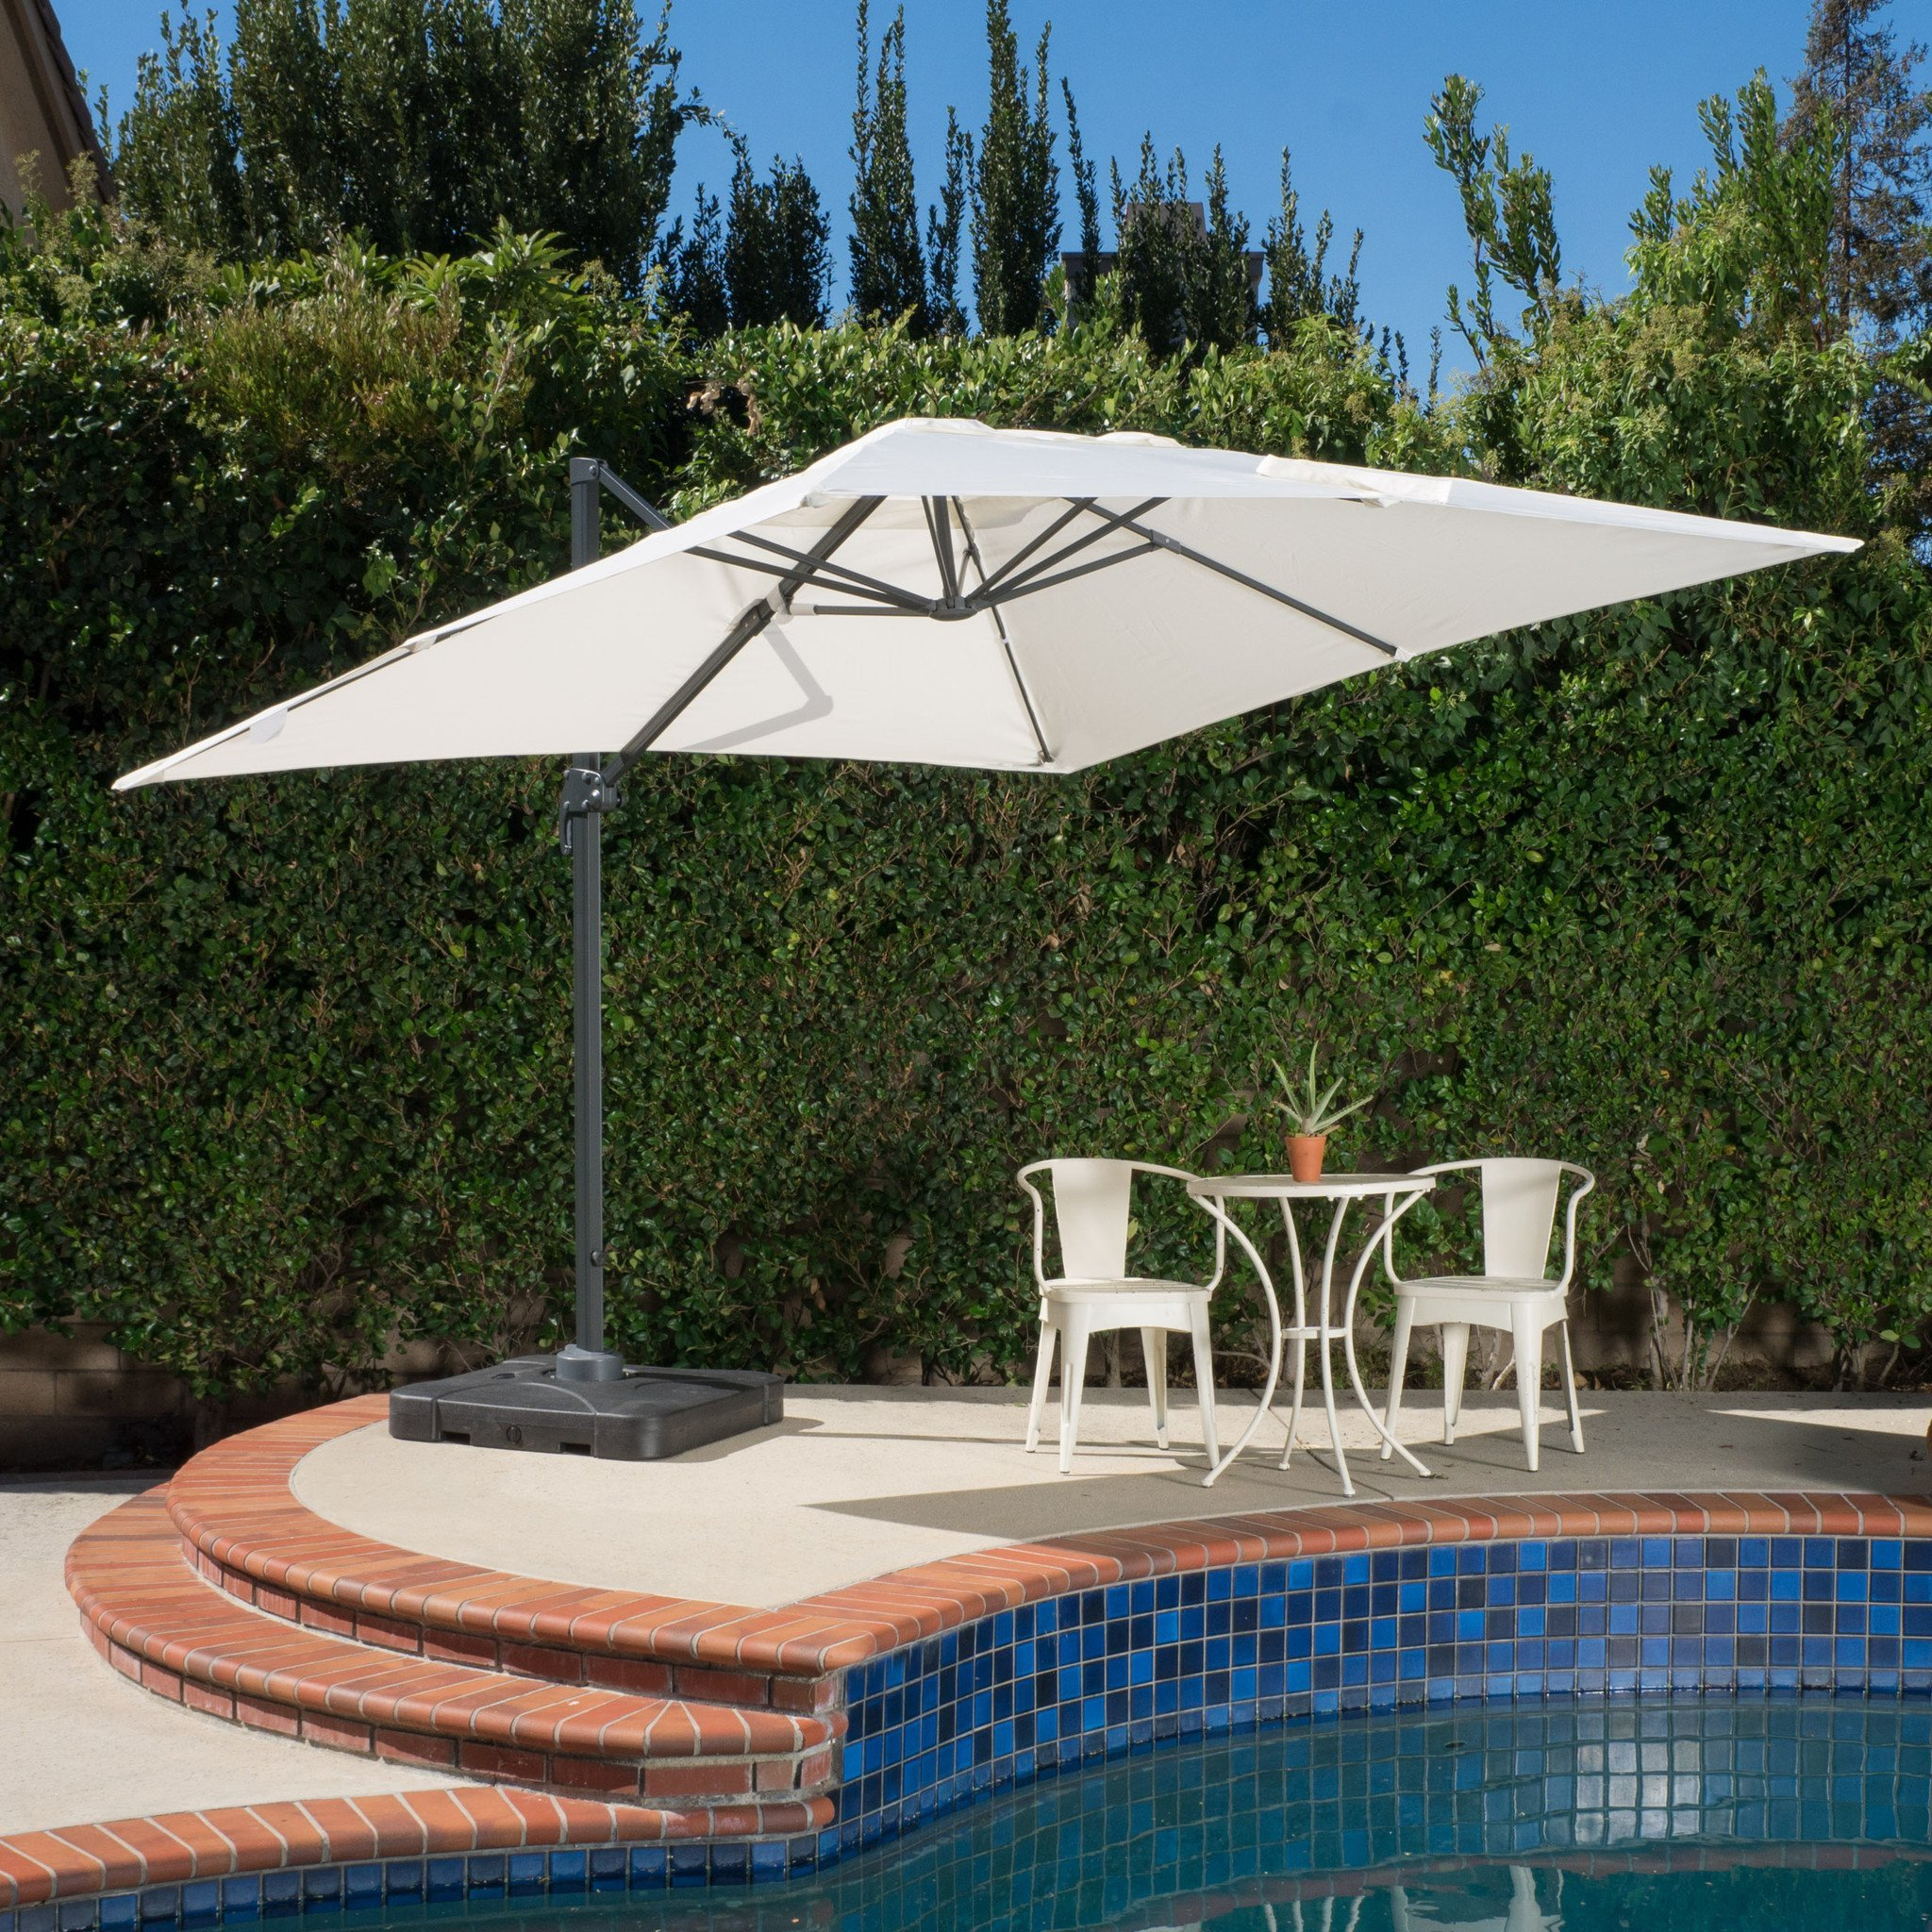 Lennie Cantilever Sunbrella Umbrellas For 2019 Denise Austin Home Sardinia Outdoor 9'8 Foot Canopy Umbrella With Stand (Gallery 18 of 20)